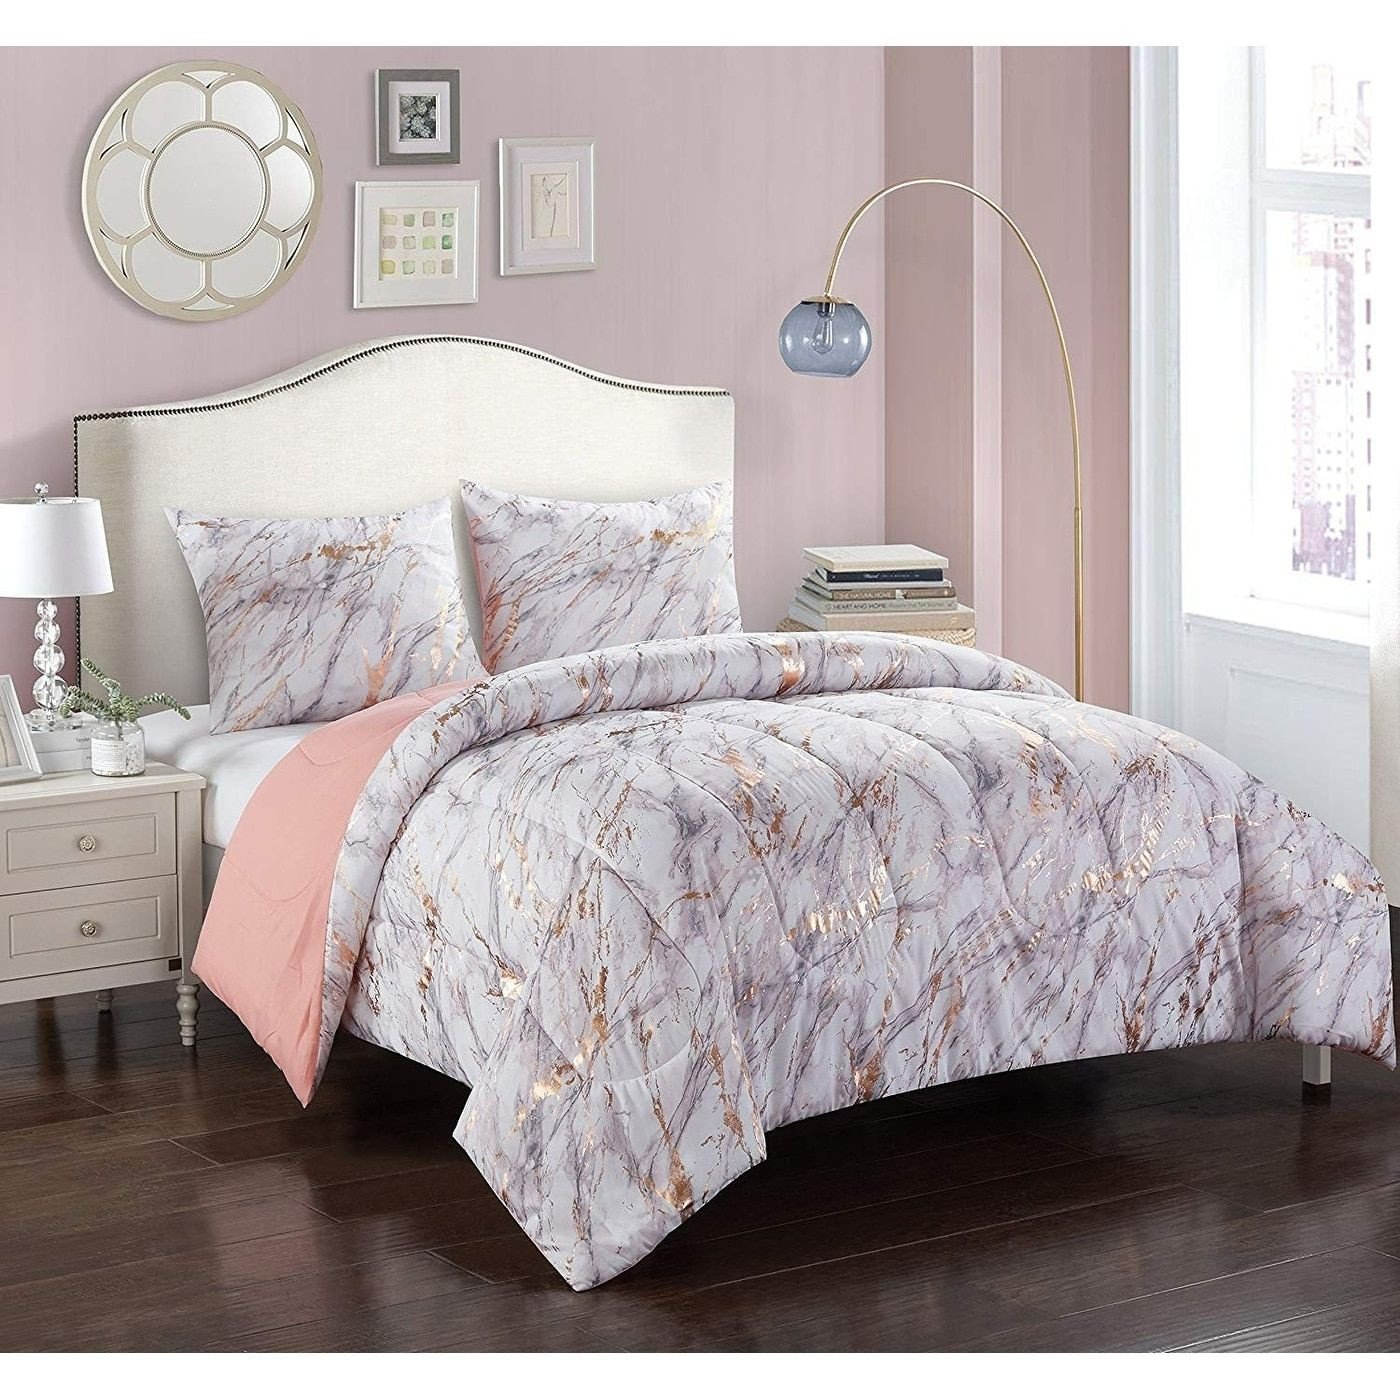 Pink and Gold Bedroom Ideas New Rose Gold and Marble forter Set Twin Pink Pop Shop